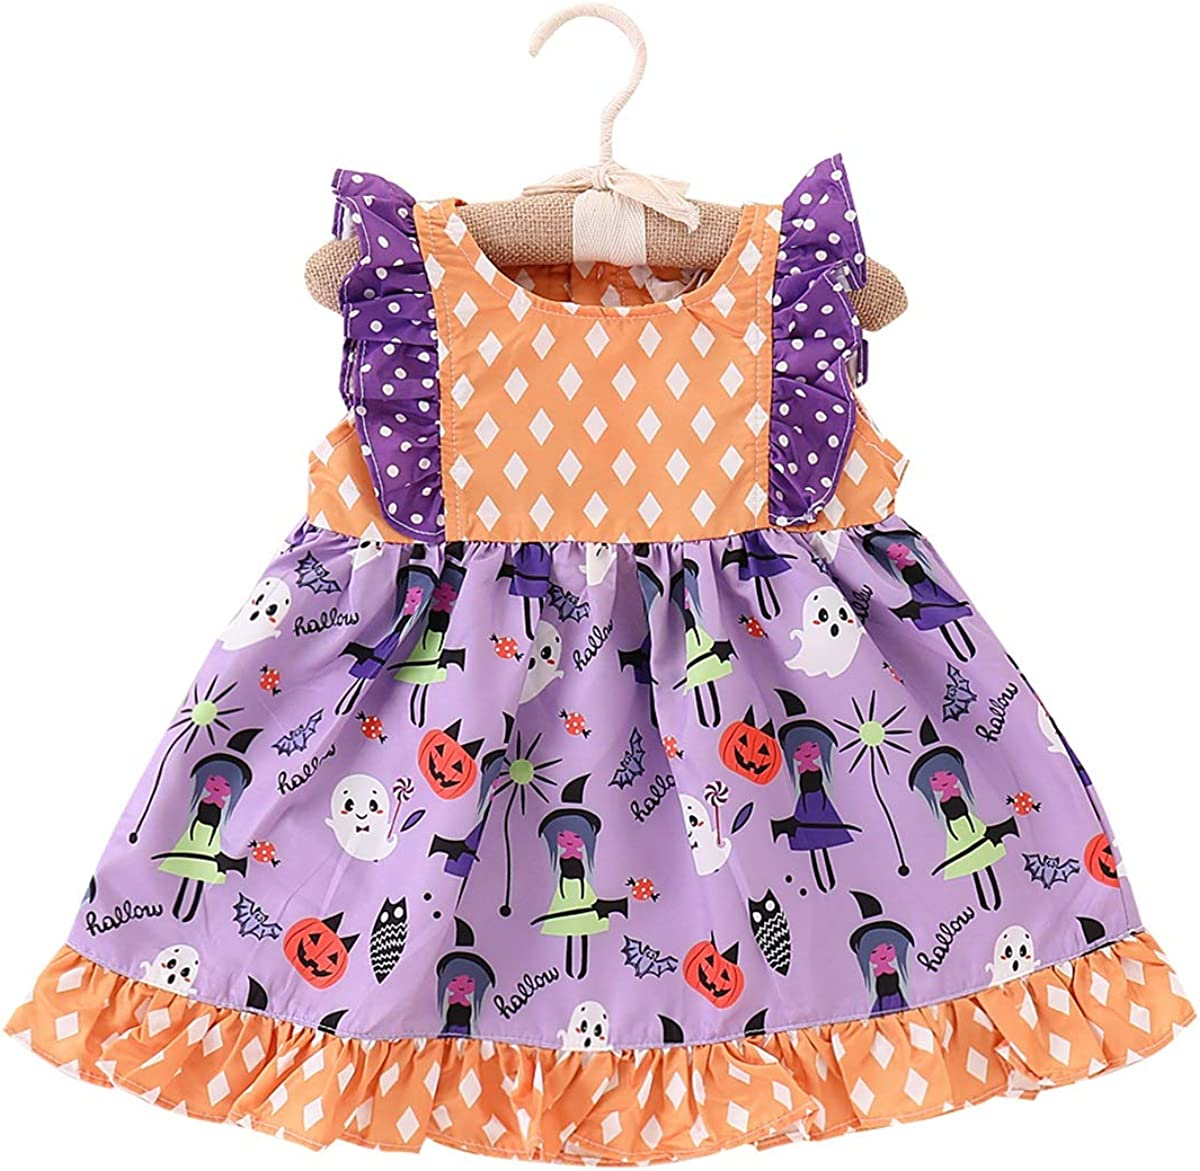 puseky Infant Kid Girls Dress Halloween Summer Party Sleeveless Cute Princess Gown Clothes